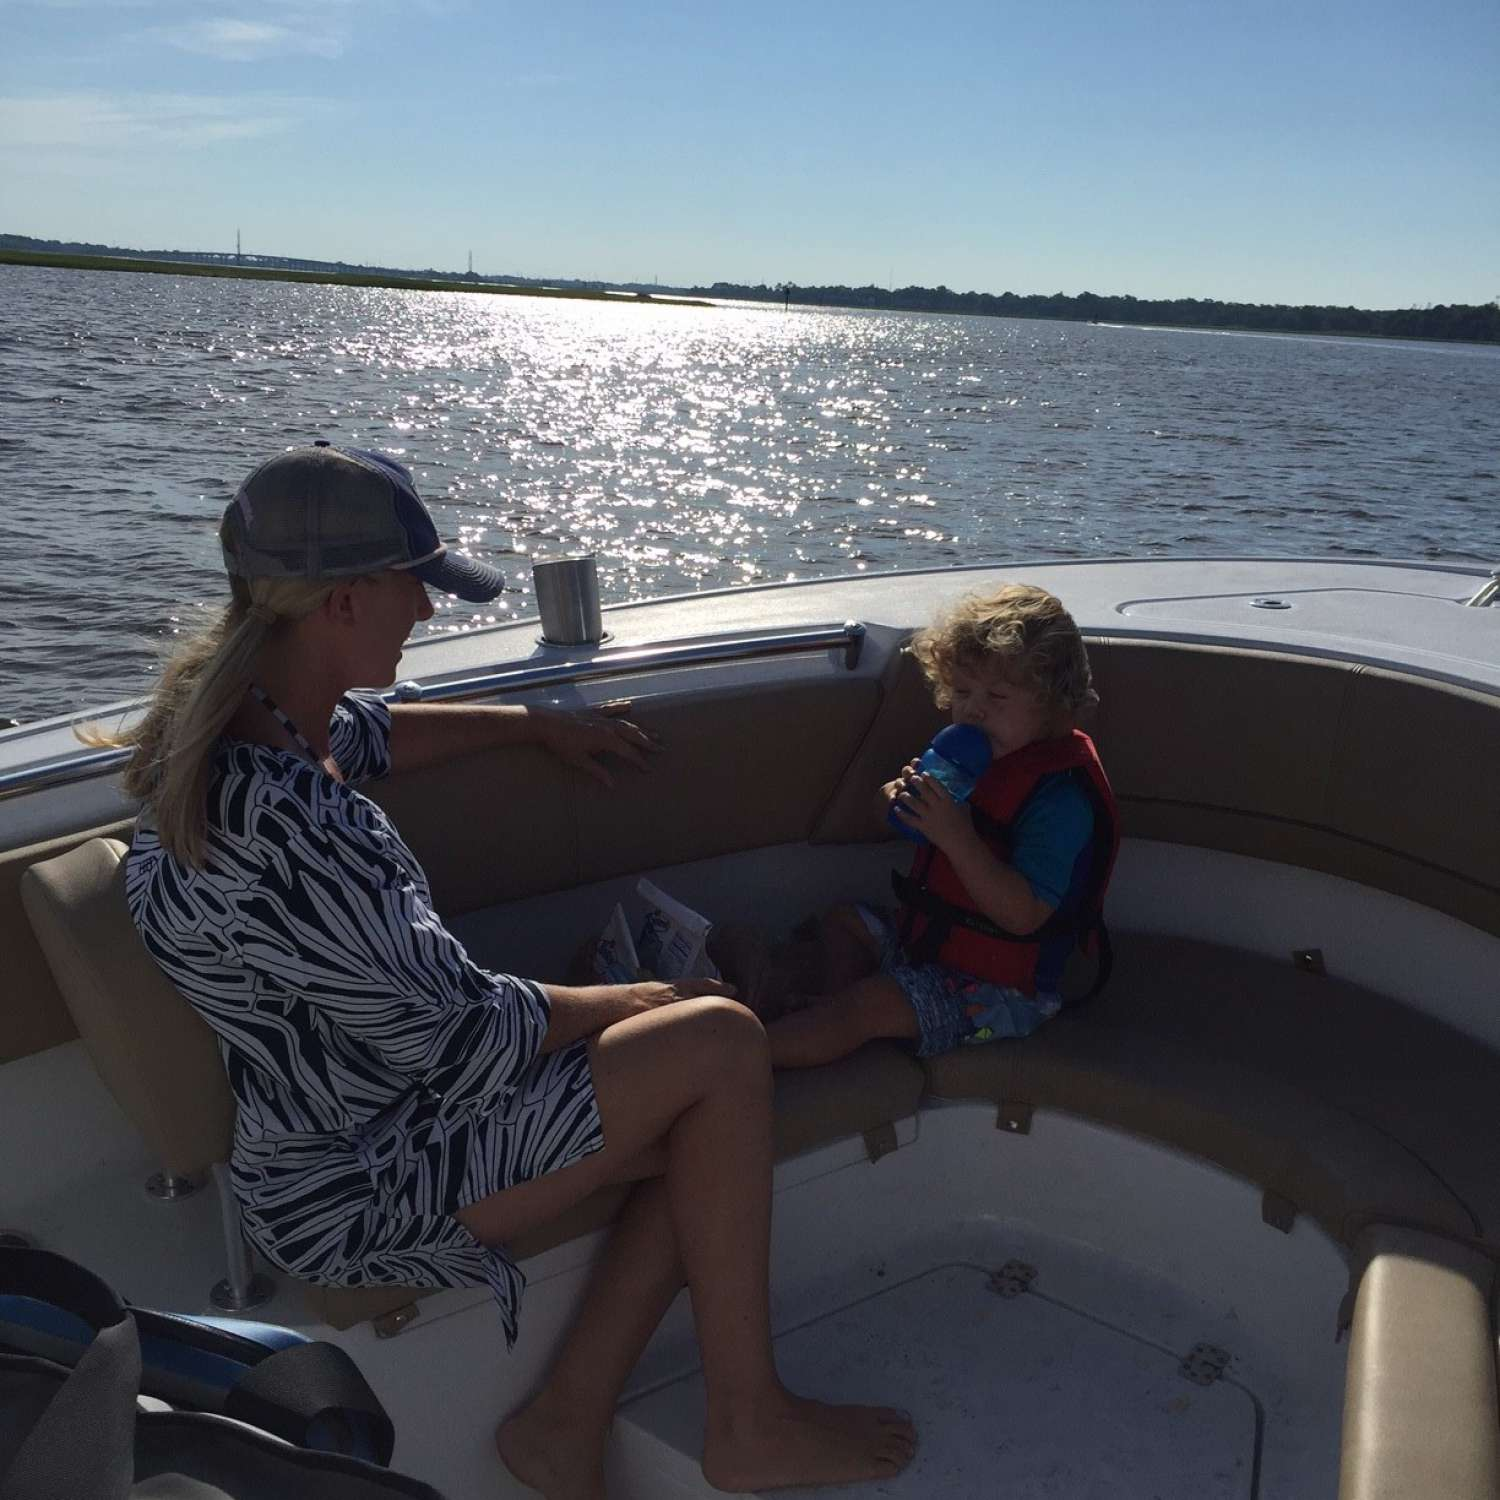 Title: Sunday Fun Day - On board their Sportsman Heritage 231 Center Console - Location: Summerville, South Carolina. Participating in the Photo Contest #SportsmanSeptember2017